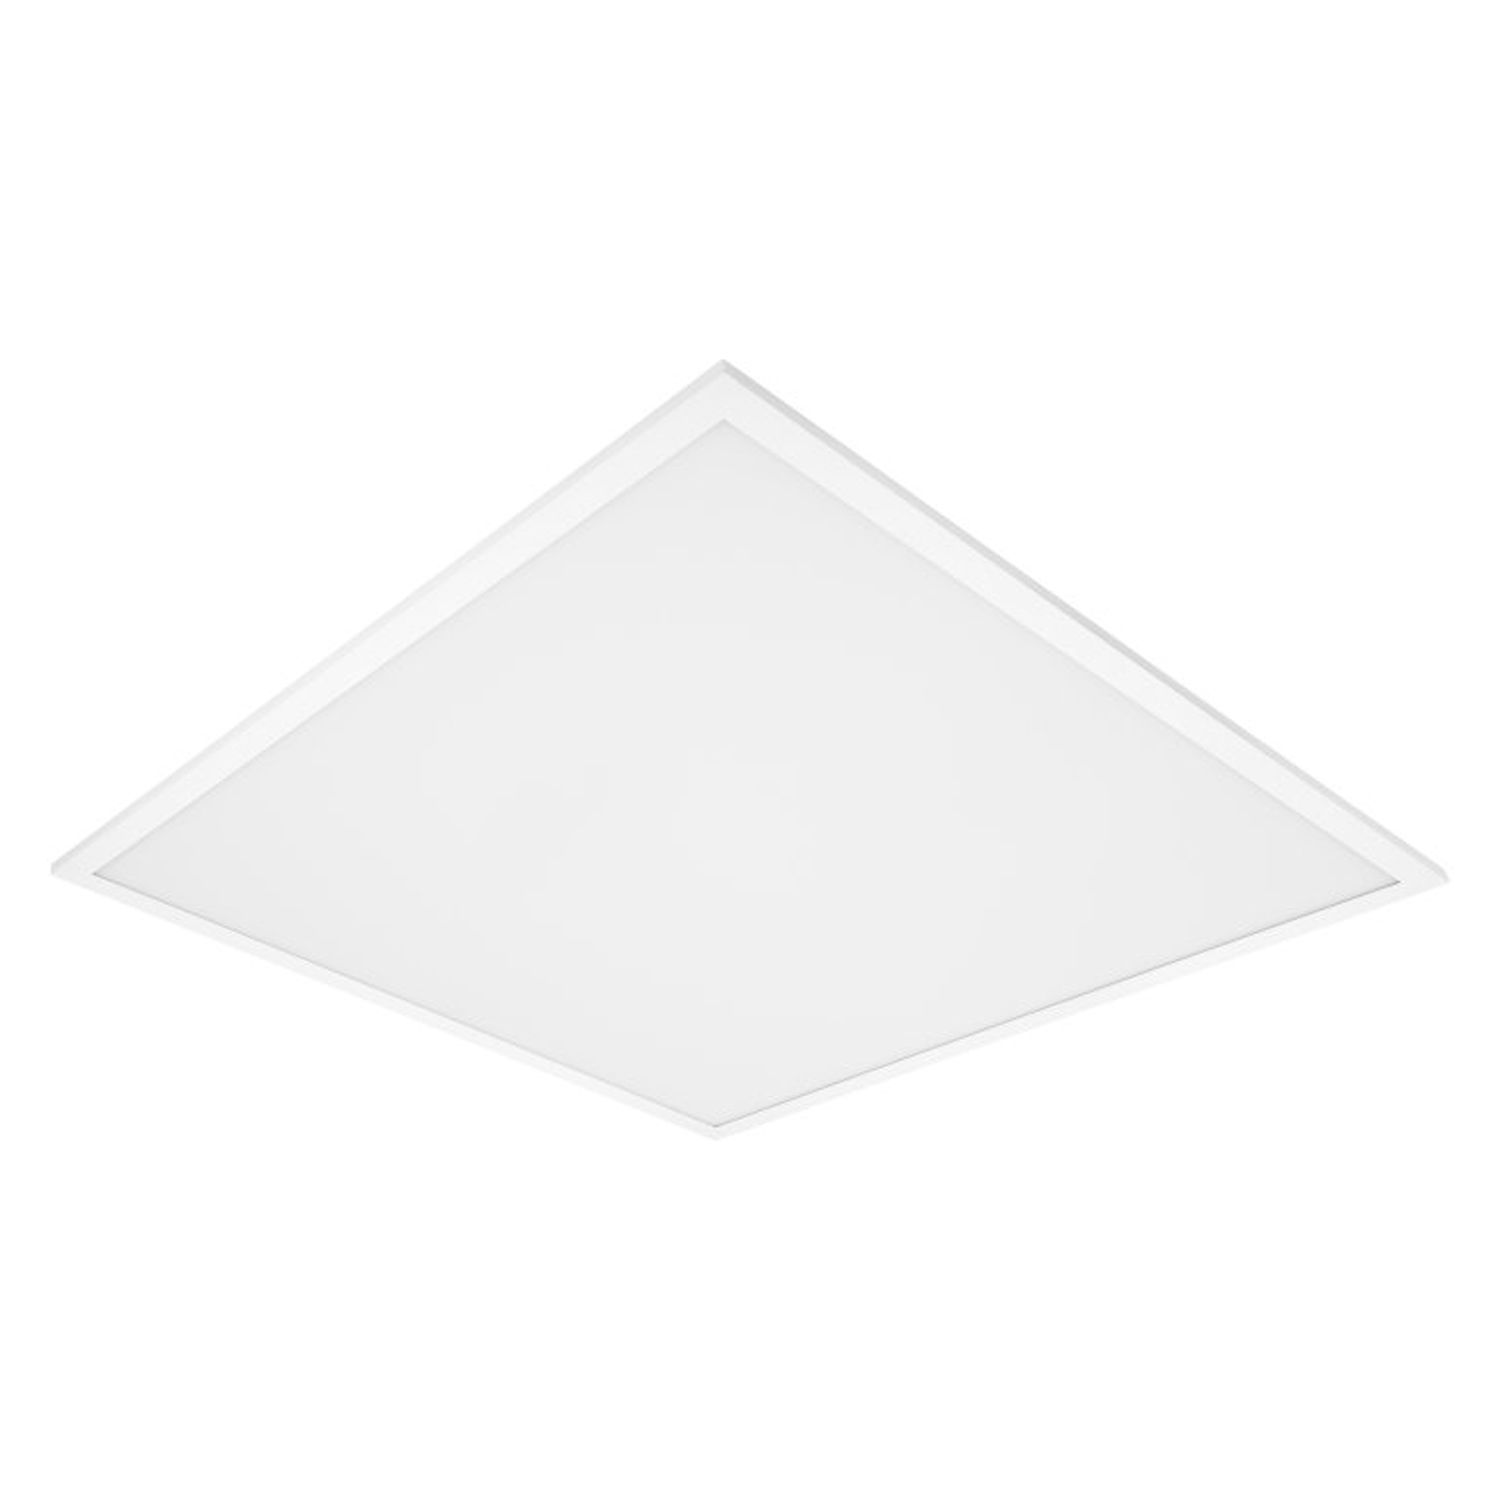 Ledvance LED Panel Performance 62.5x62.5cm 4000K 30W  UGR<19 | Cool White